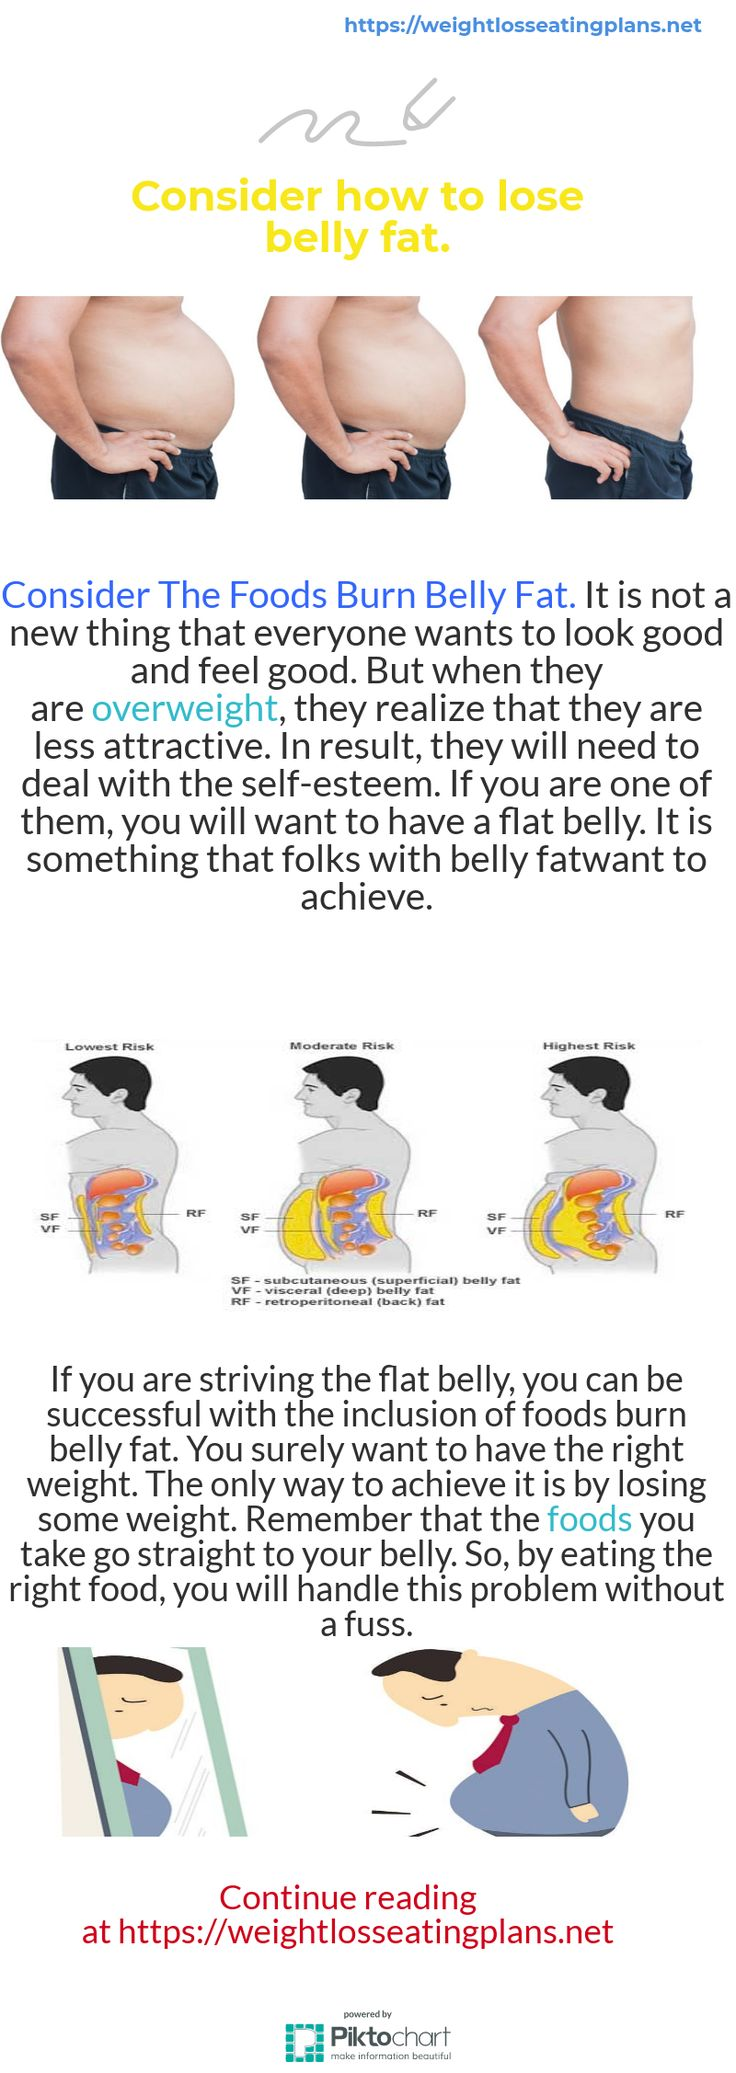 Consider how to lose belly fat, #lose #belly #fat #burn #healthyfood  #dieting #fitness #fit #healthy #eatclean #hardwork #gym #fitspiration #dedicated #motivation #inspiration #instagood #instamood #statigram #iphonesia  #igers #instadaily #tweegram #instagramhub #twelveskip #follow #bestoftheday #iphoneonly #igdaily #picstitch #followme #webstagram #jj #picoftheday